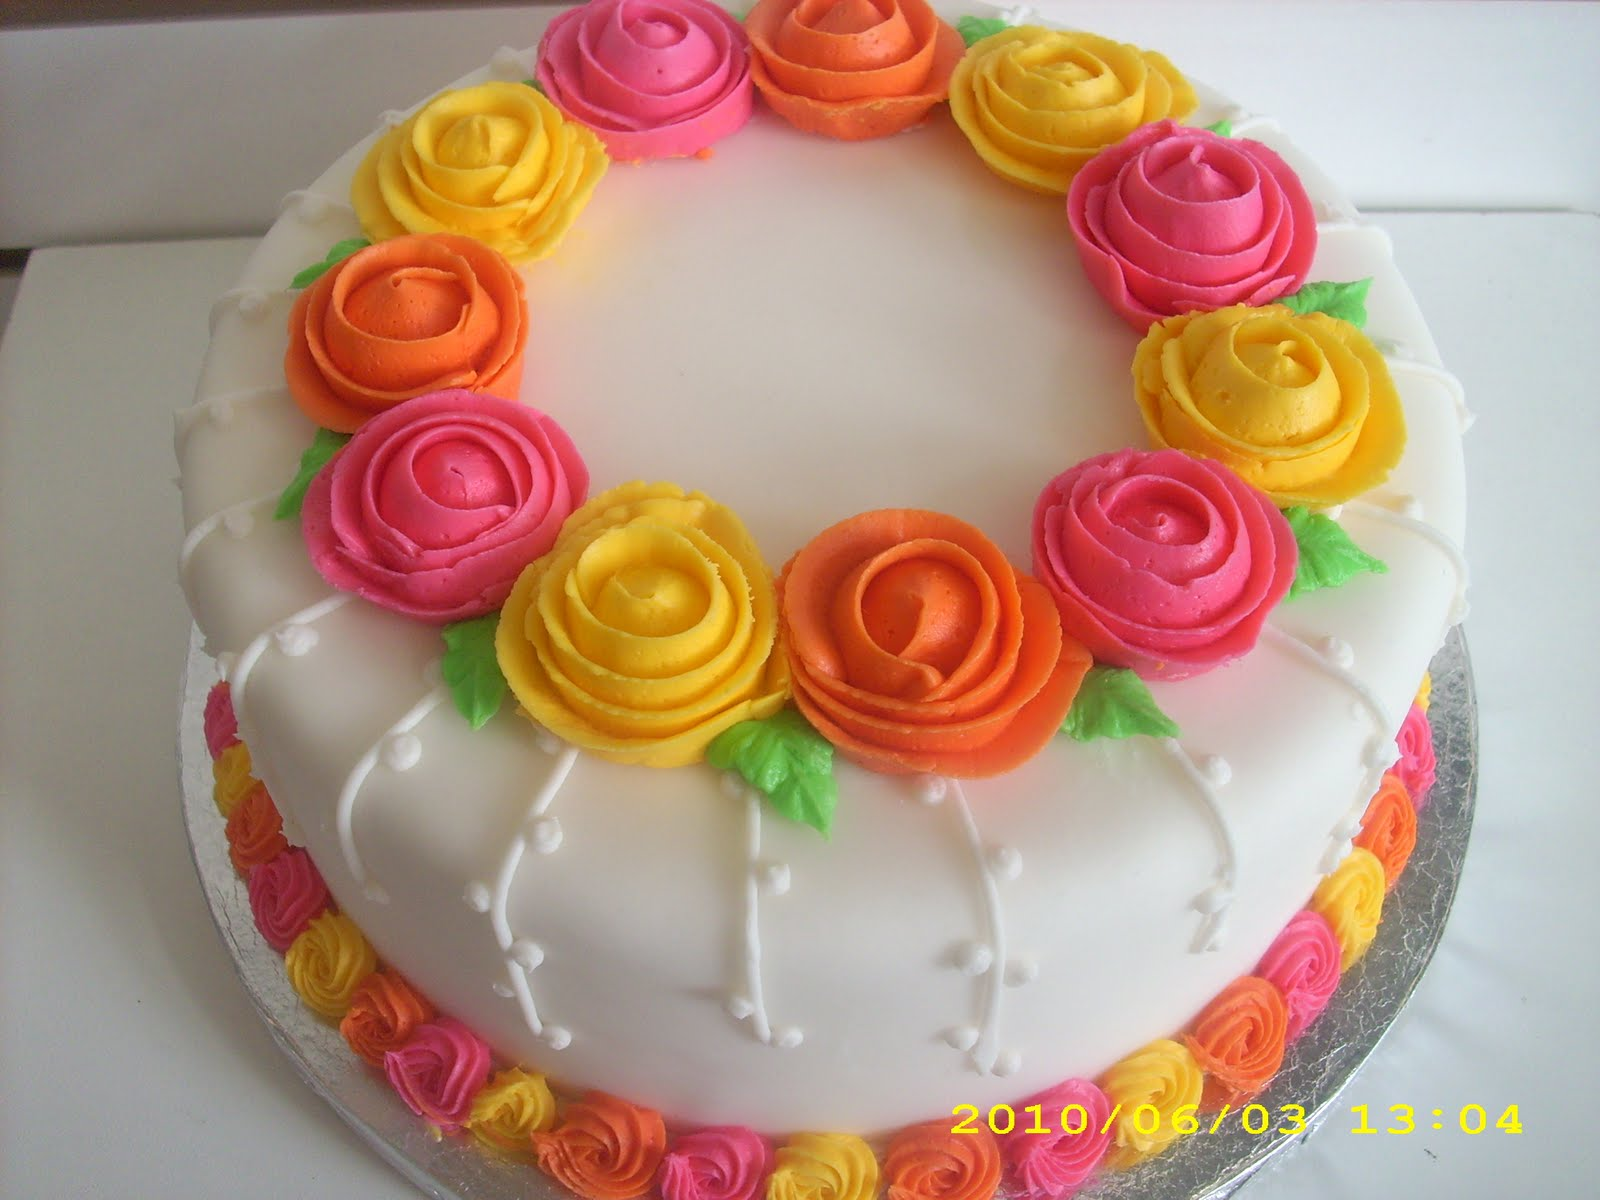 Cake Design And Decoration : Cake Decorating heydanixo